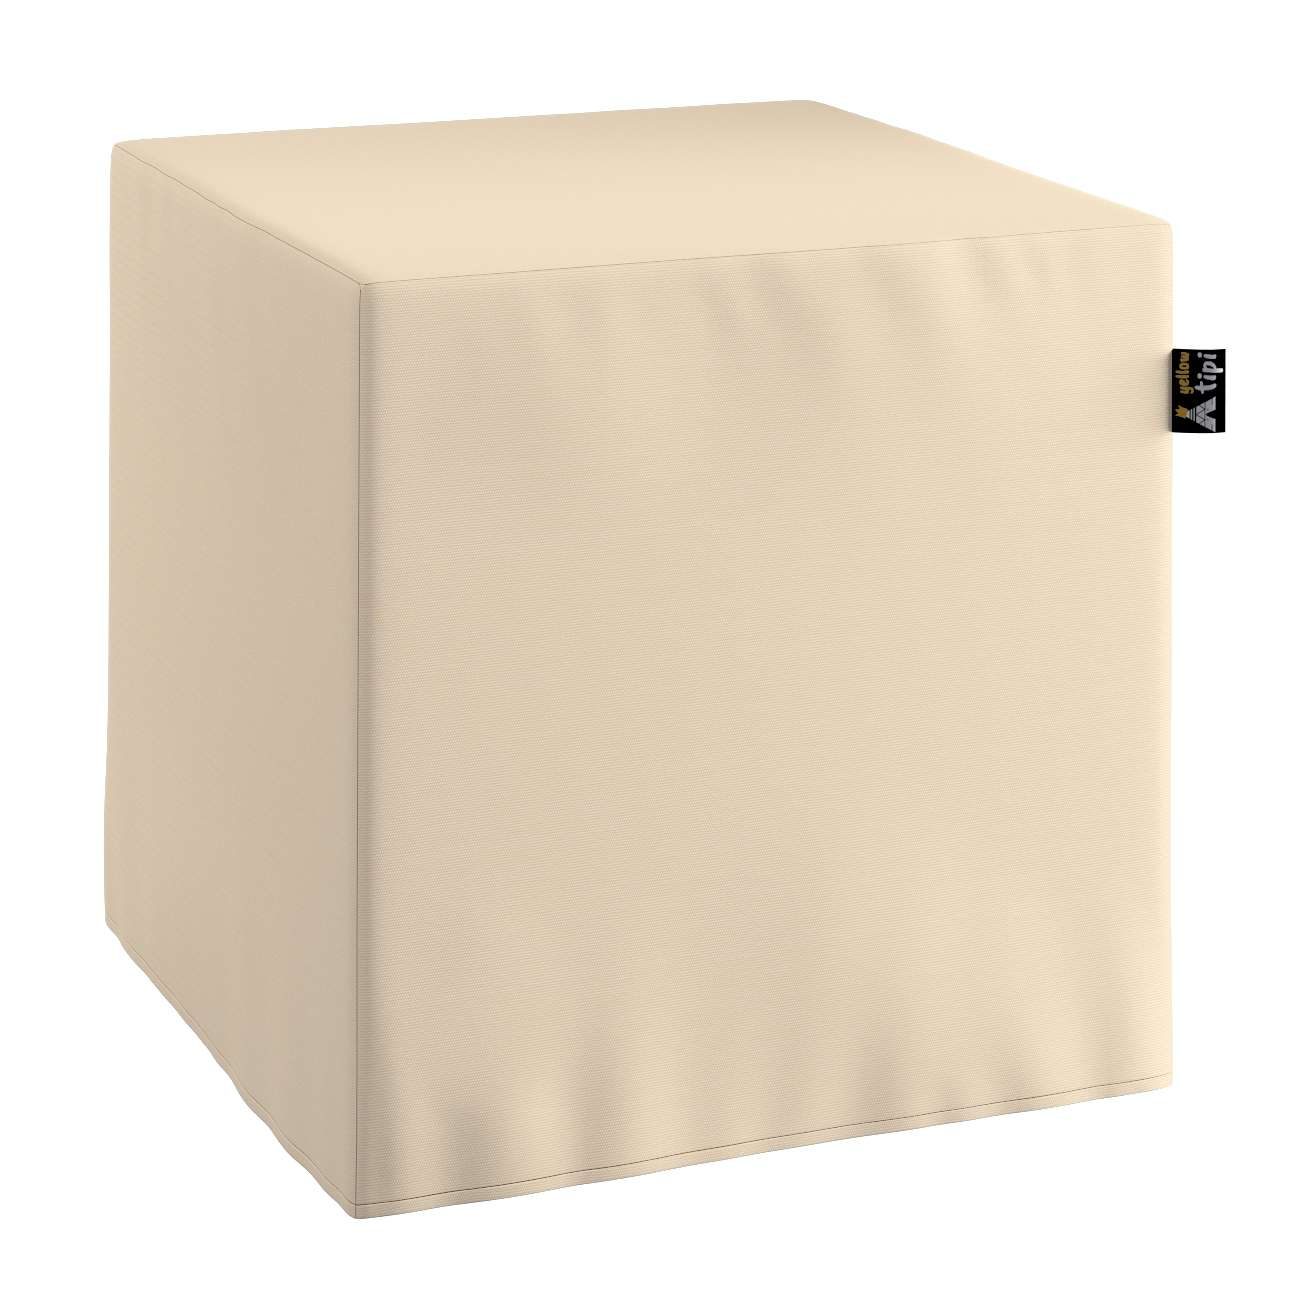 Nano cube pouf in collection Cotton Story, fabric: 702-29